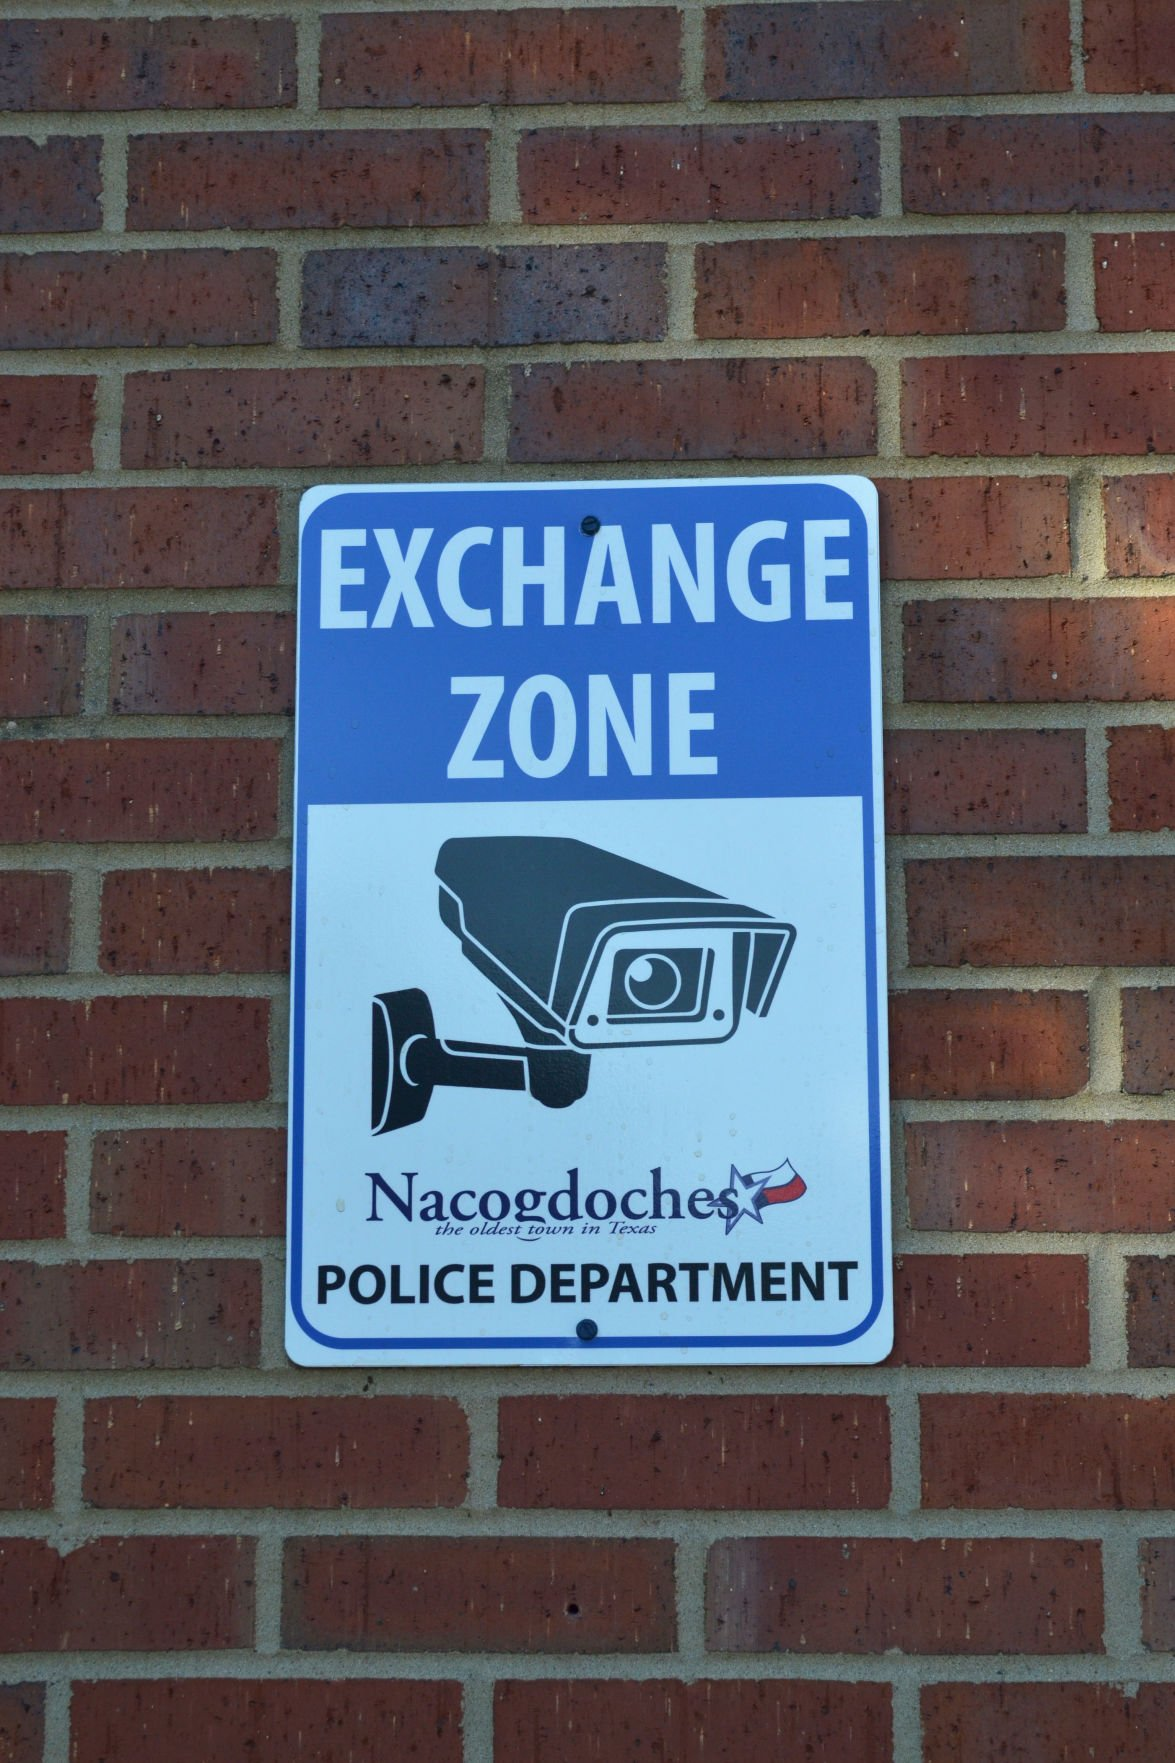 Nac PD designates secure area for exchanges